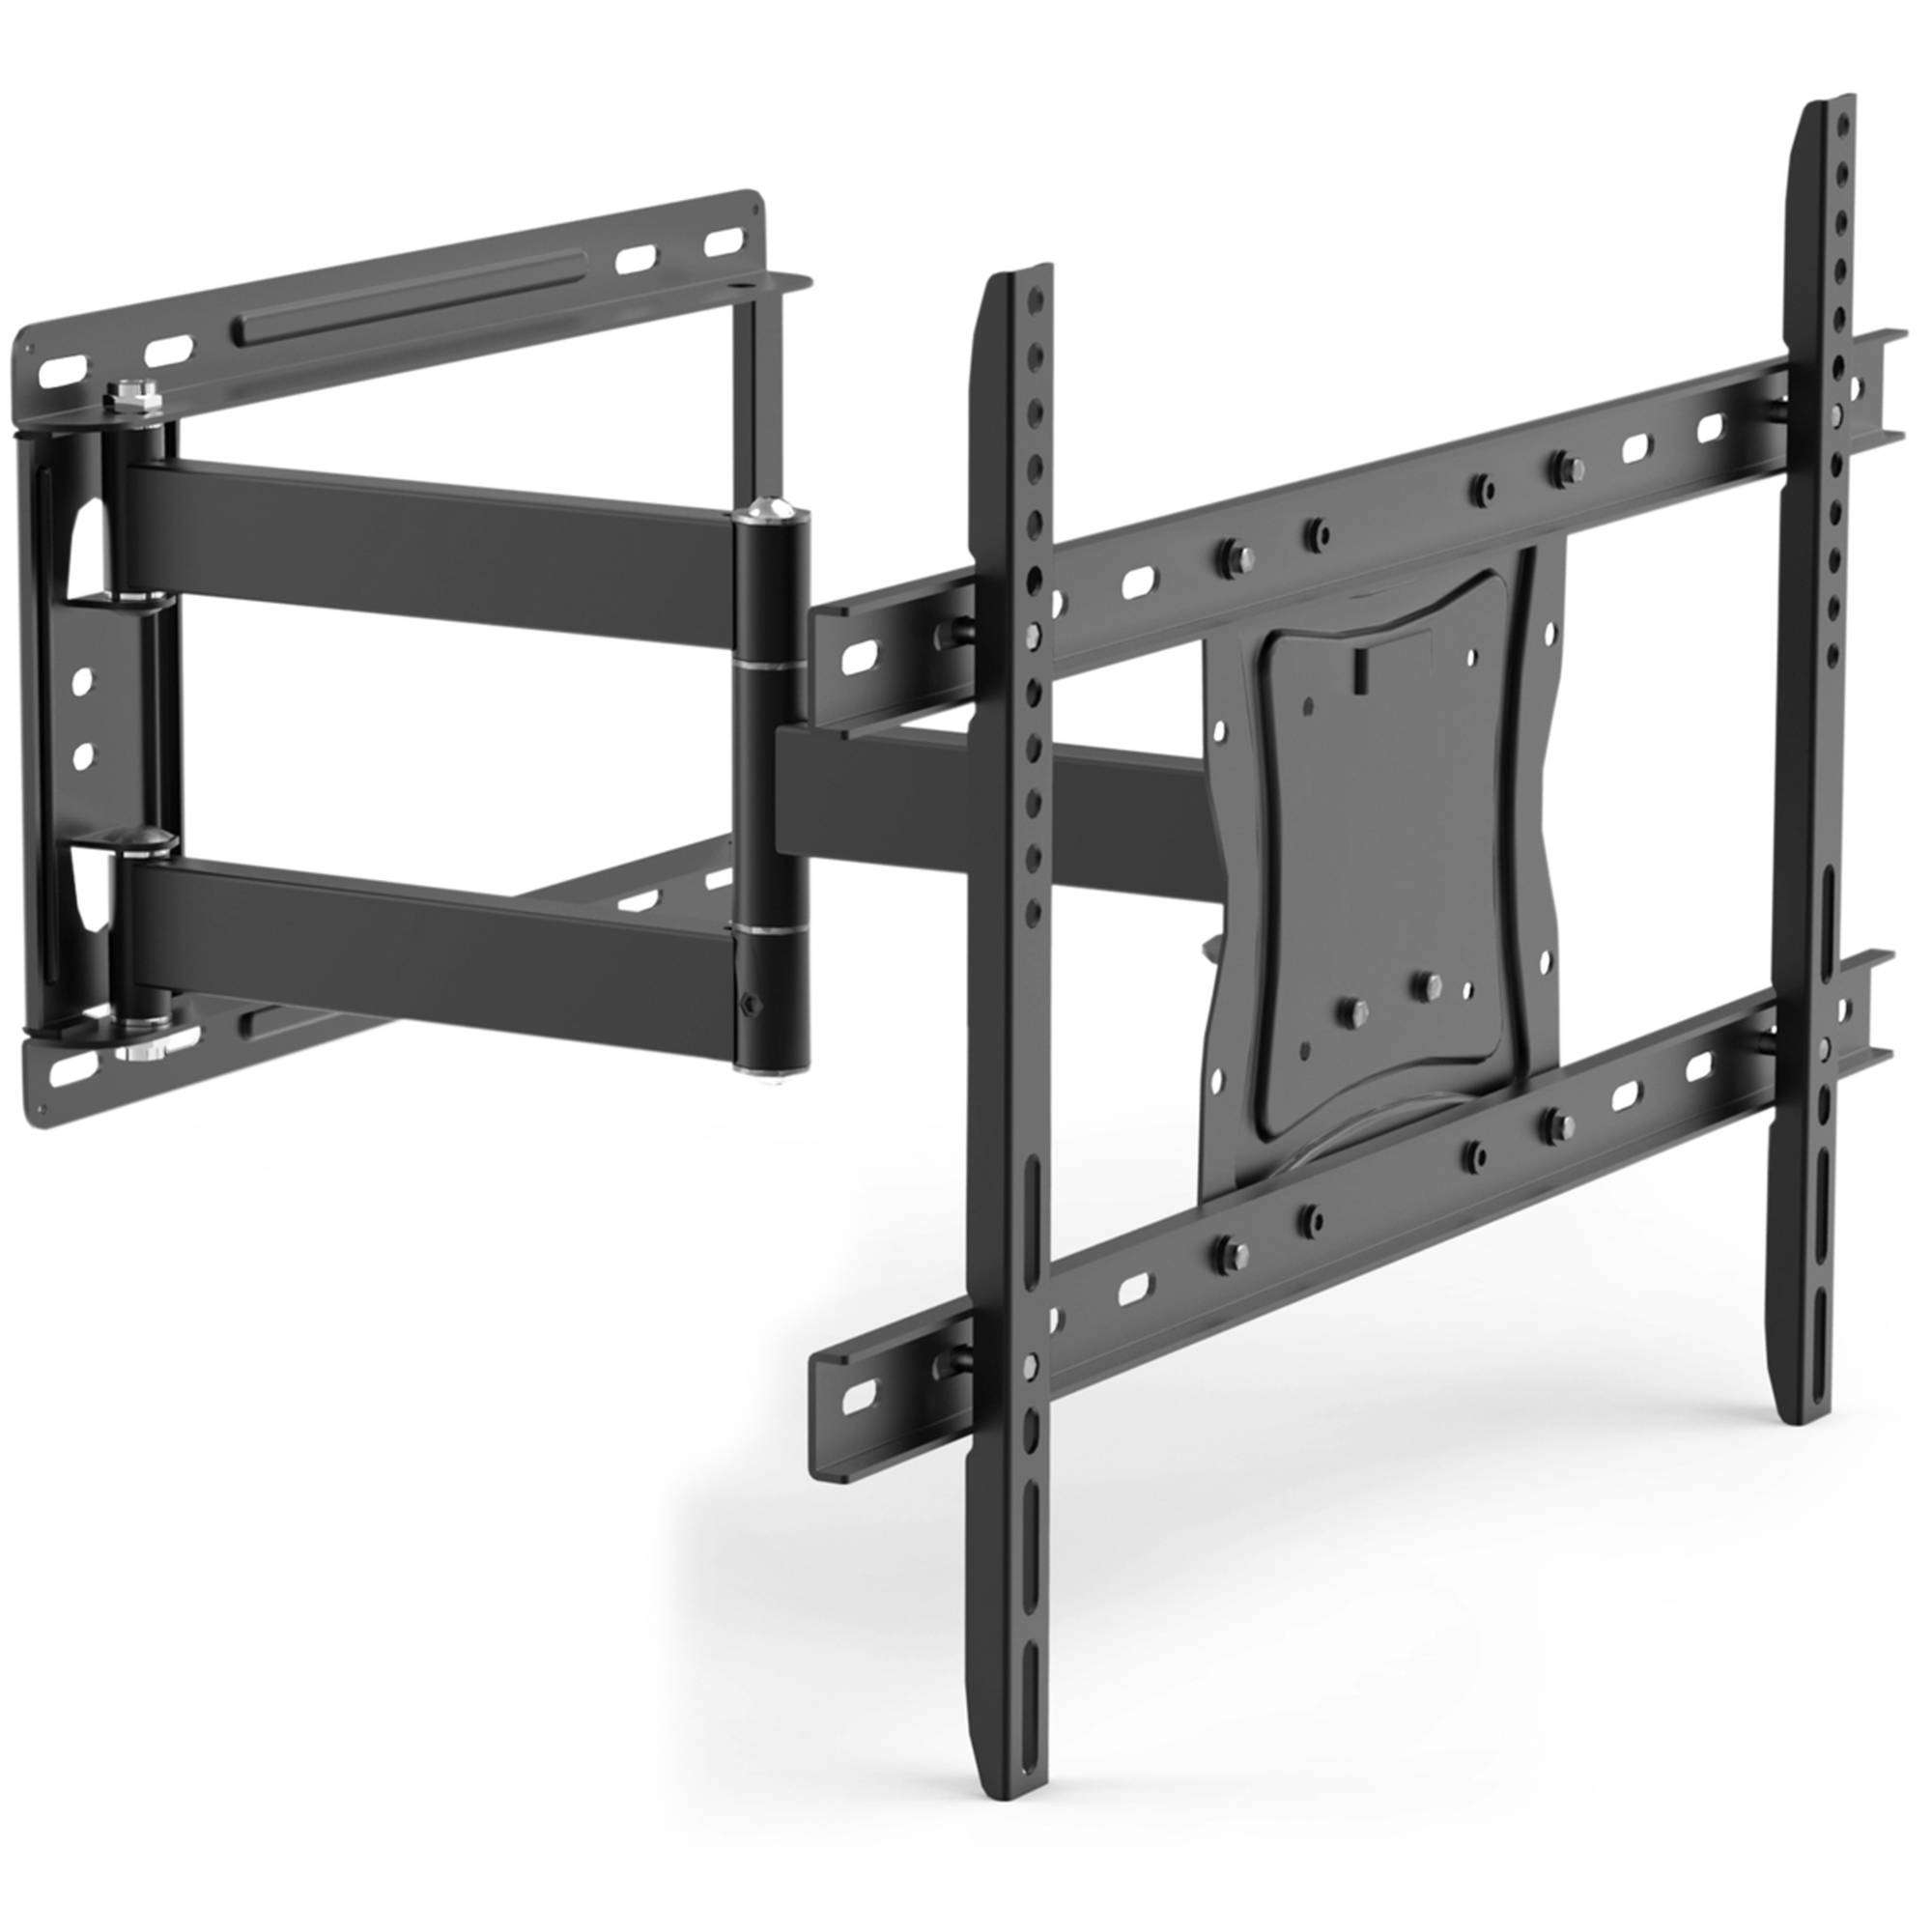 Table : Amazing Wall Mount Adjustable Tv Stands Fenge Universal Tv With Wall Mount Adjustable Tv Stands (View 12 of 20)